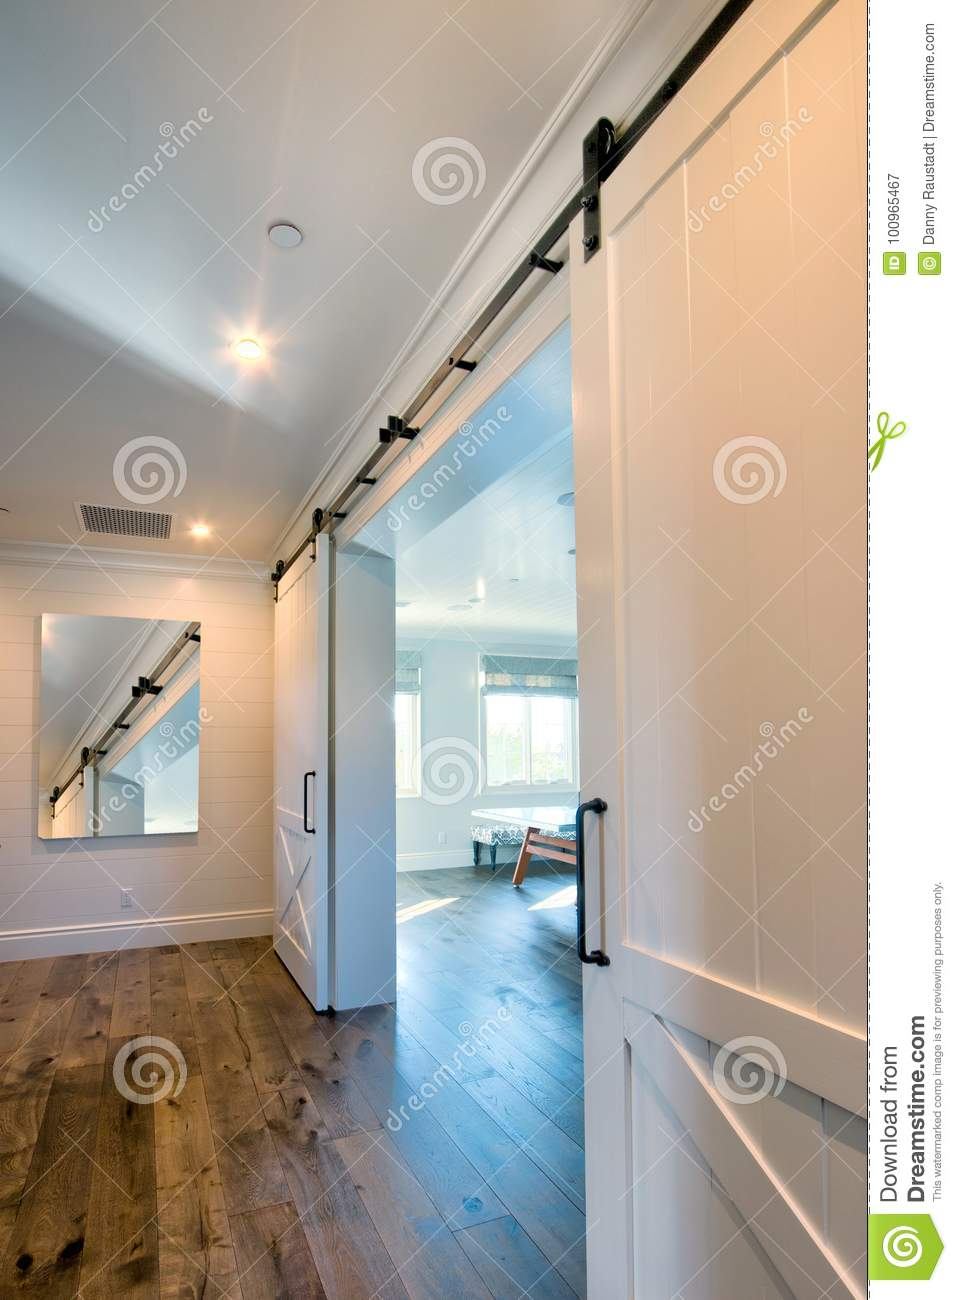 Interior Sliding Barn Doors Into Bathroom Stock Image